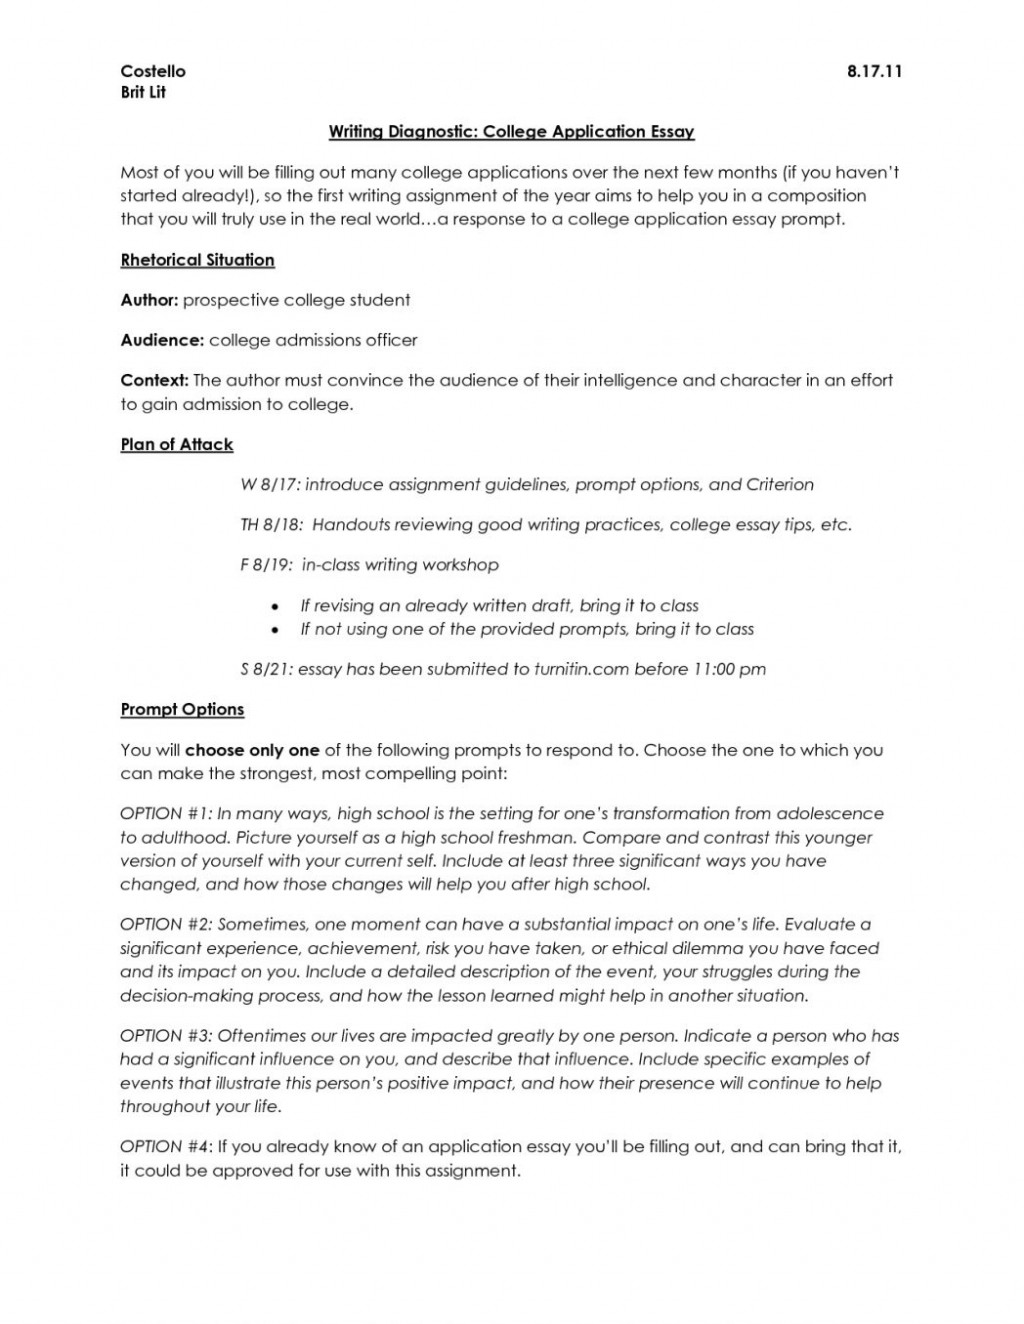 Keene state college admission essay writing